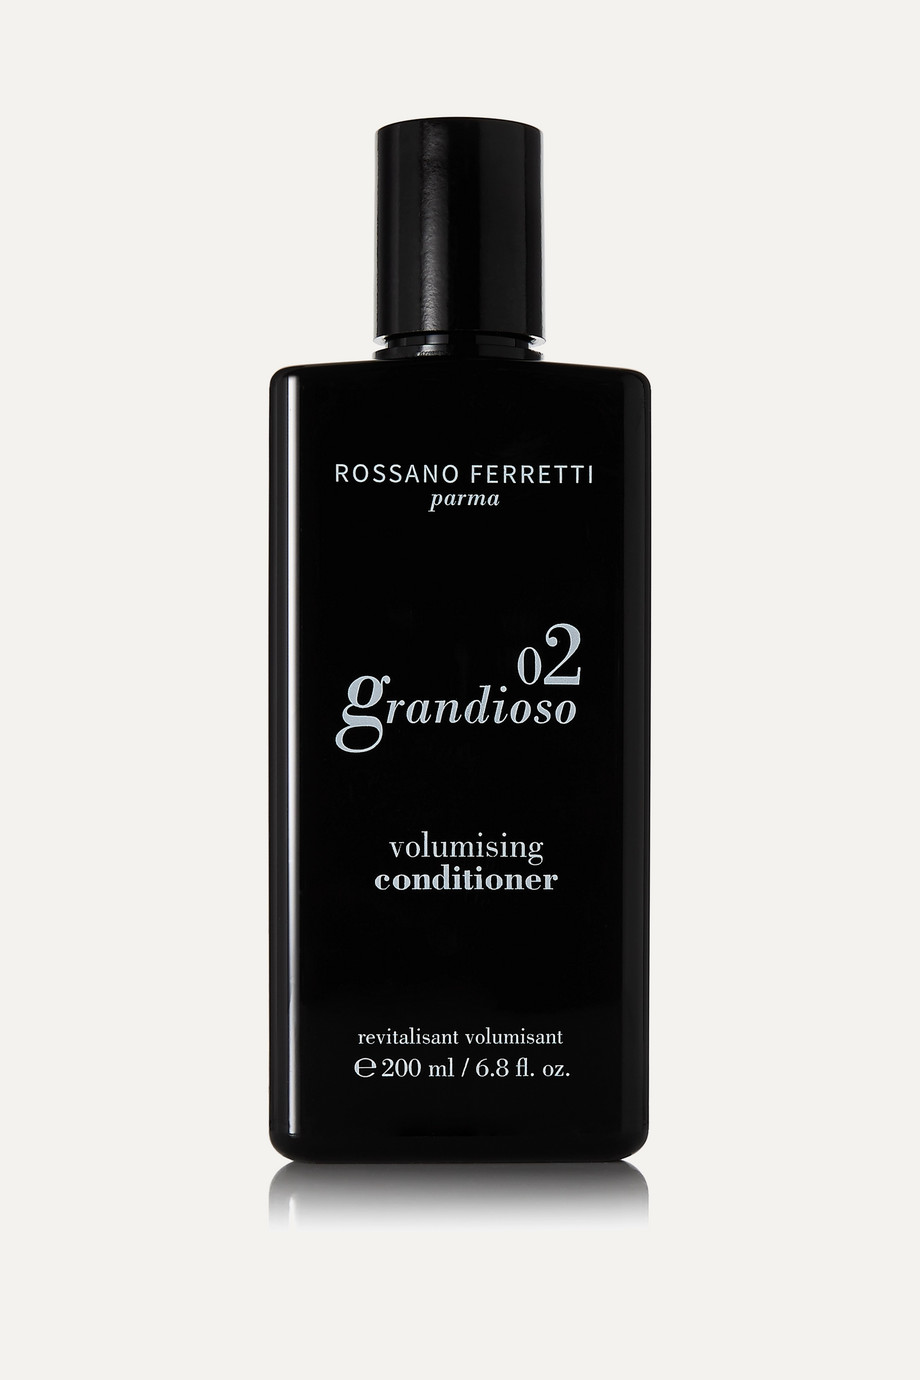 ROSSANO FERRETTI PARMA Grandioso Volumising Conditioner, 200ml